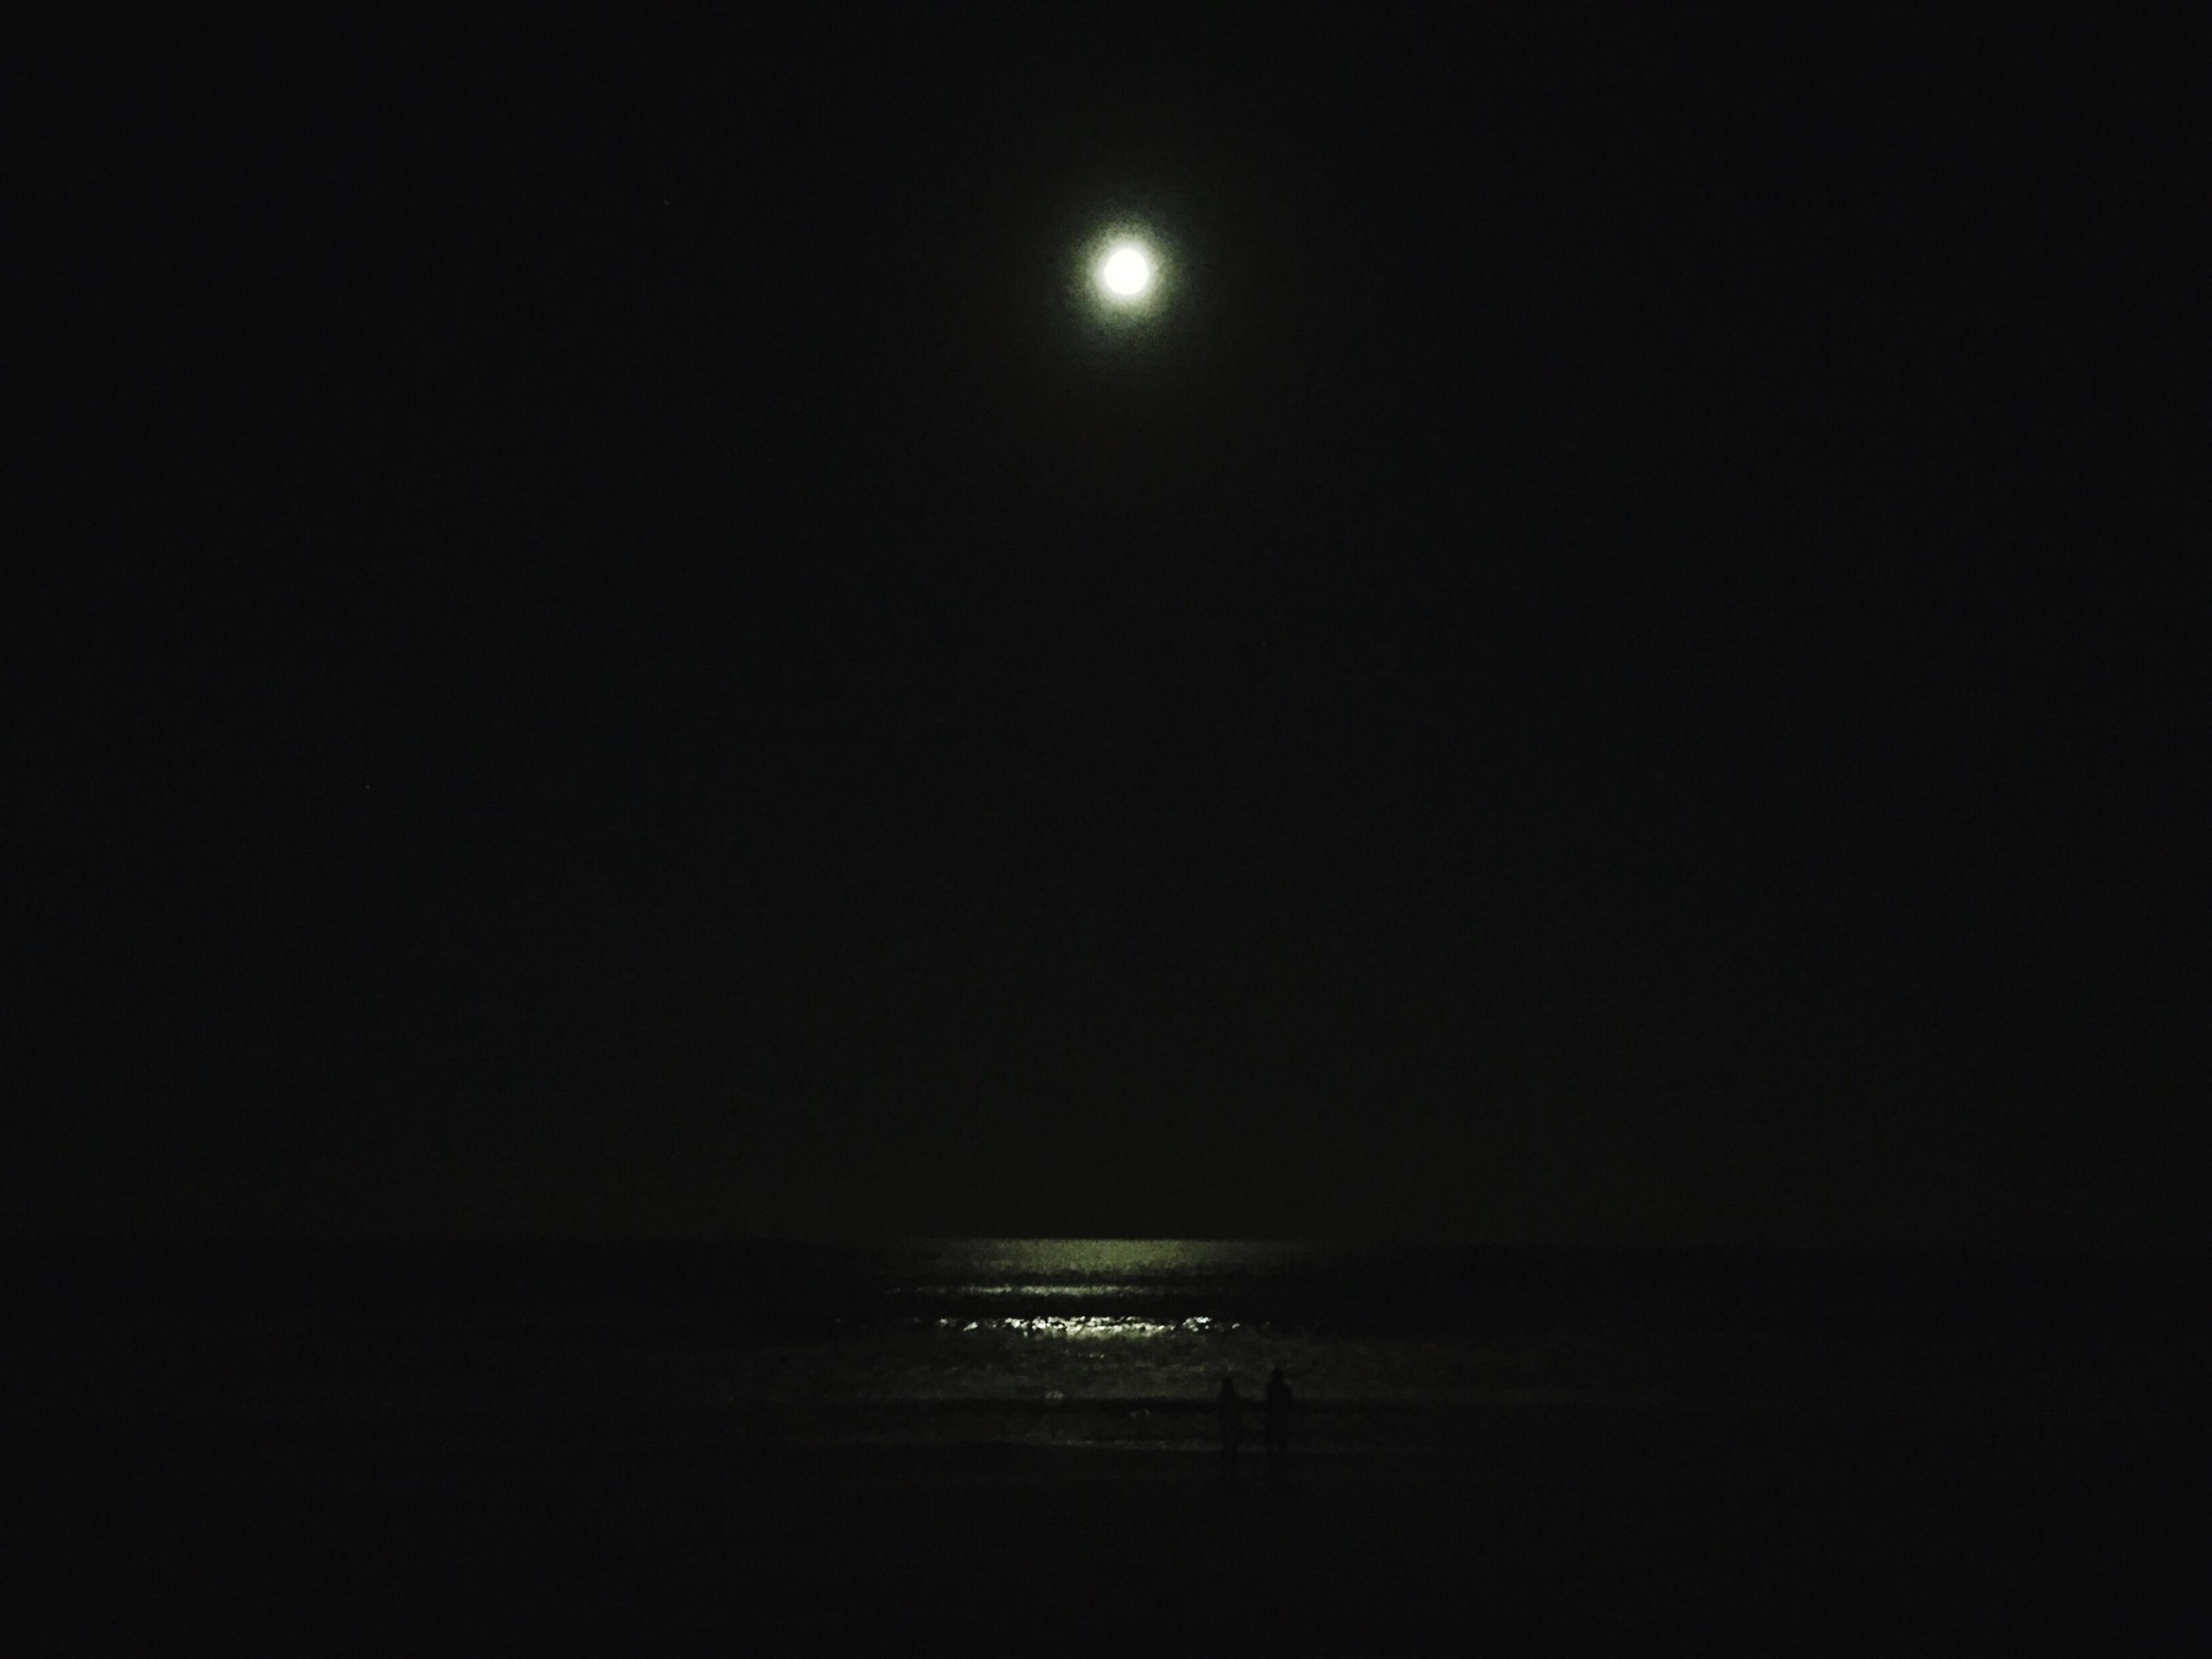 night, sea, moon, water, copy space, tranquil scene, tranquility, scenics, illuminated, horizon over water, beauty in nature, clear sky, sky, nature, silhouette, dark, idyllic, waterfront, dusk, outdoors